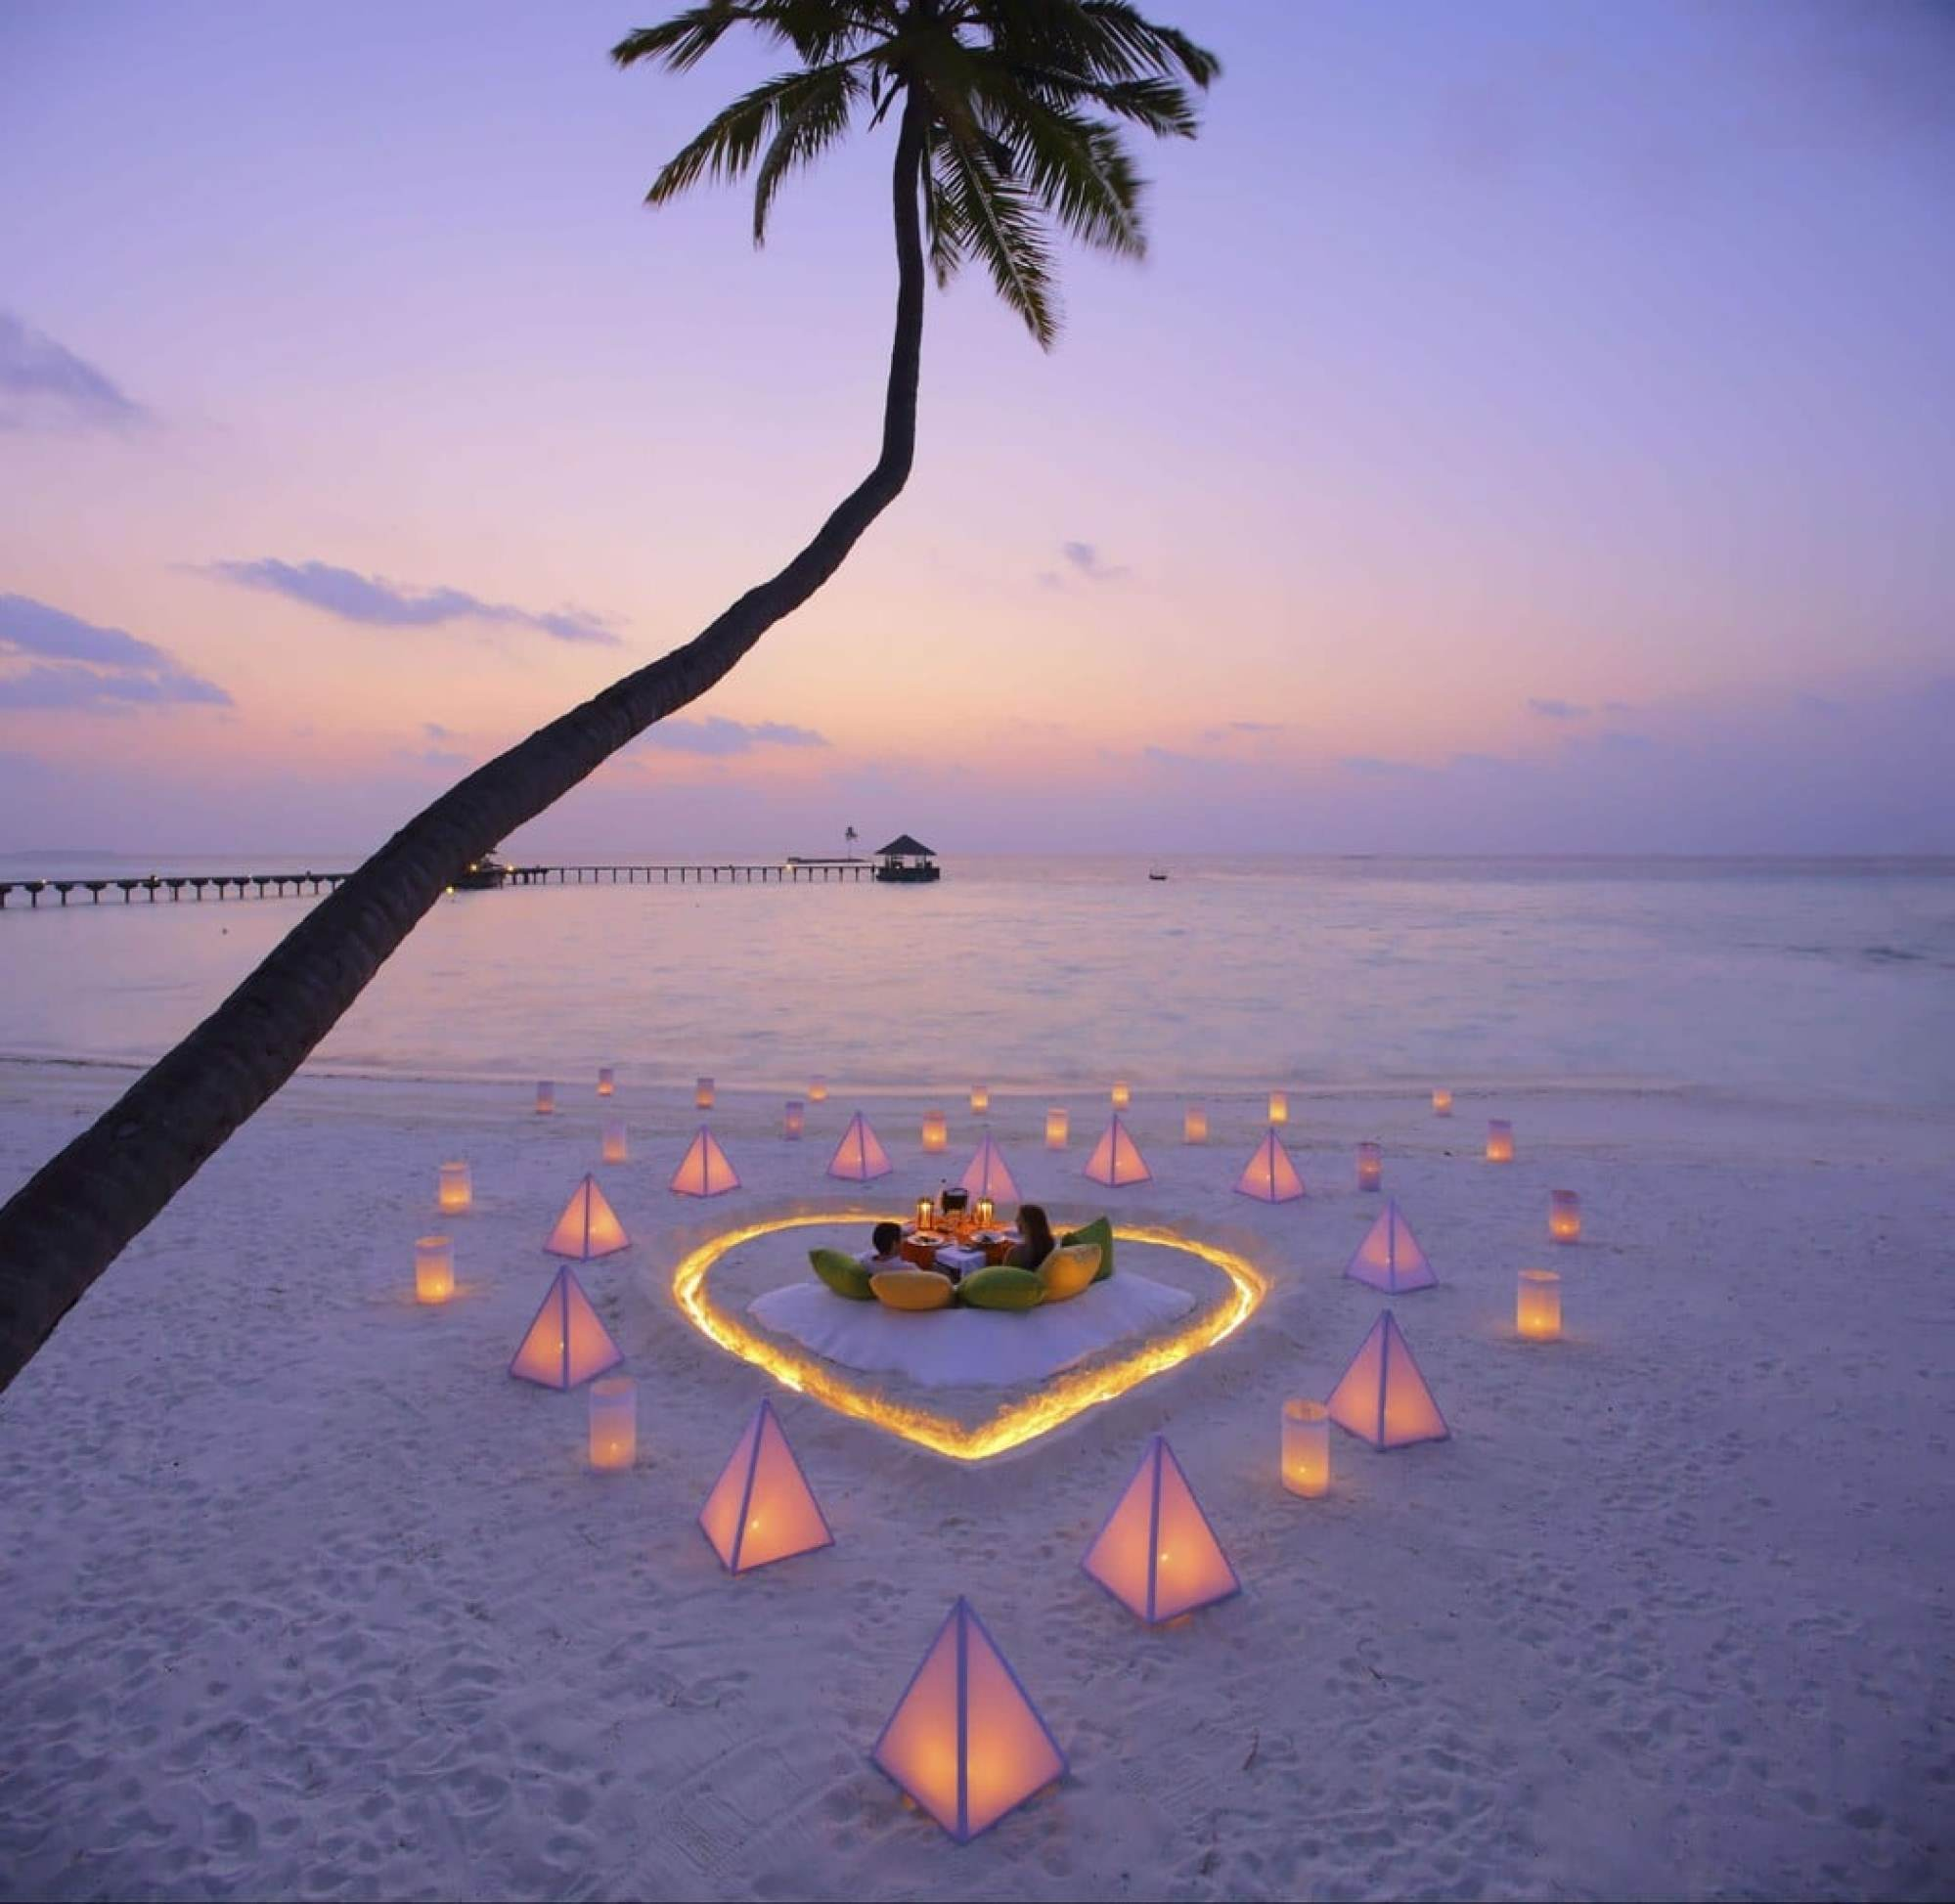 Destination dining on the beach for two - Courtesy of Gili Lankanfushi